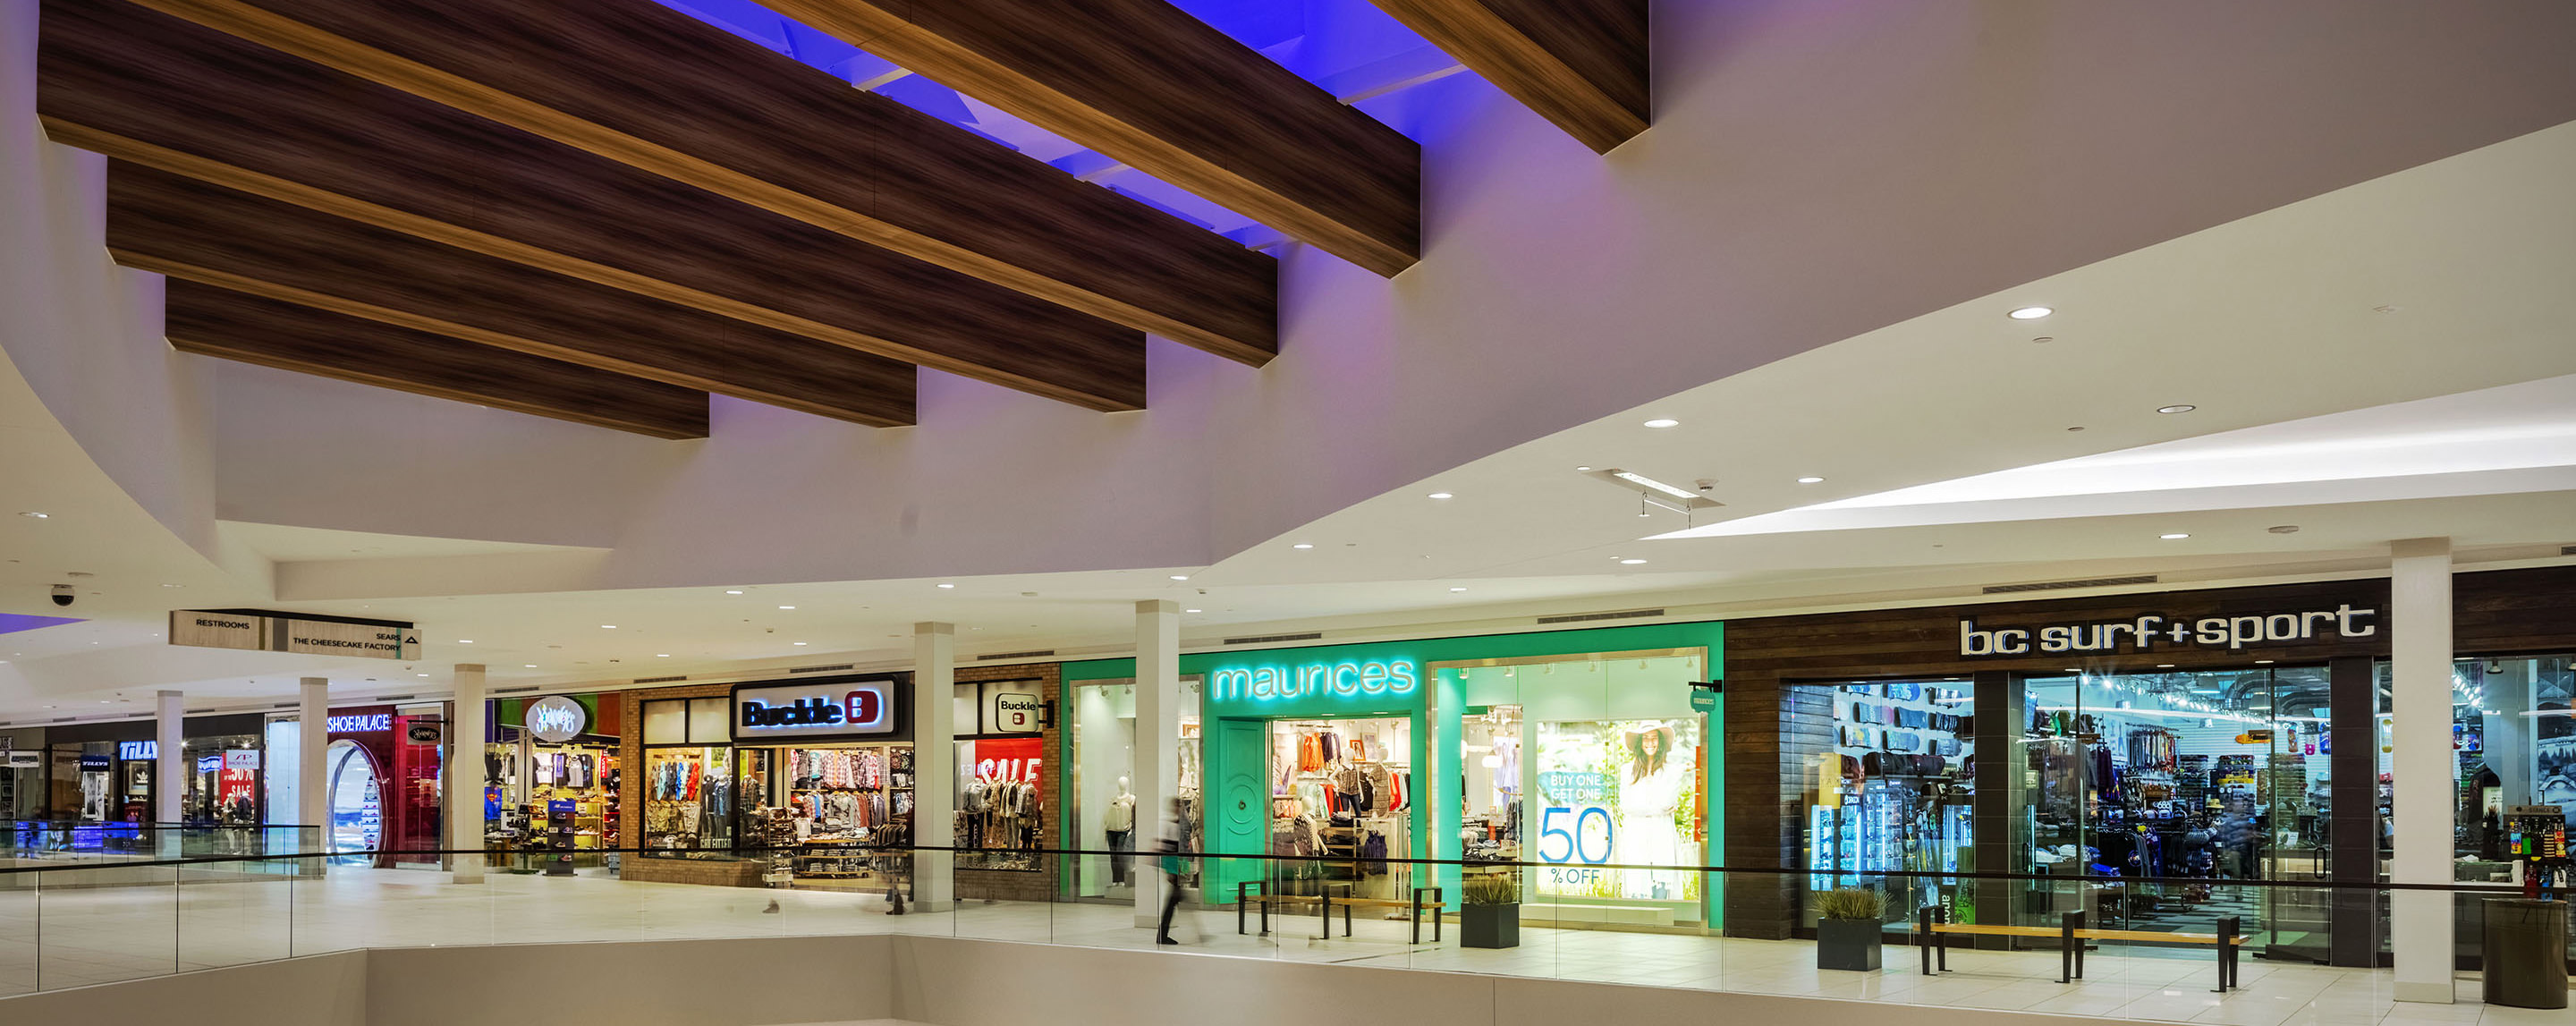 Under a decorative skylight, Buckle, maurices and Bc Surf & Sport are some of the stores on the second level at Southwest Plaza.